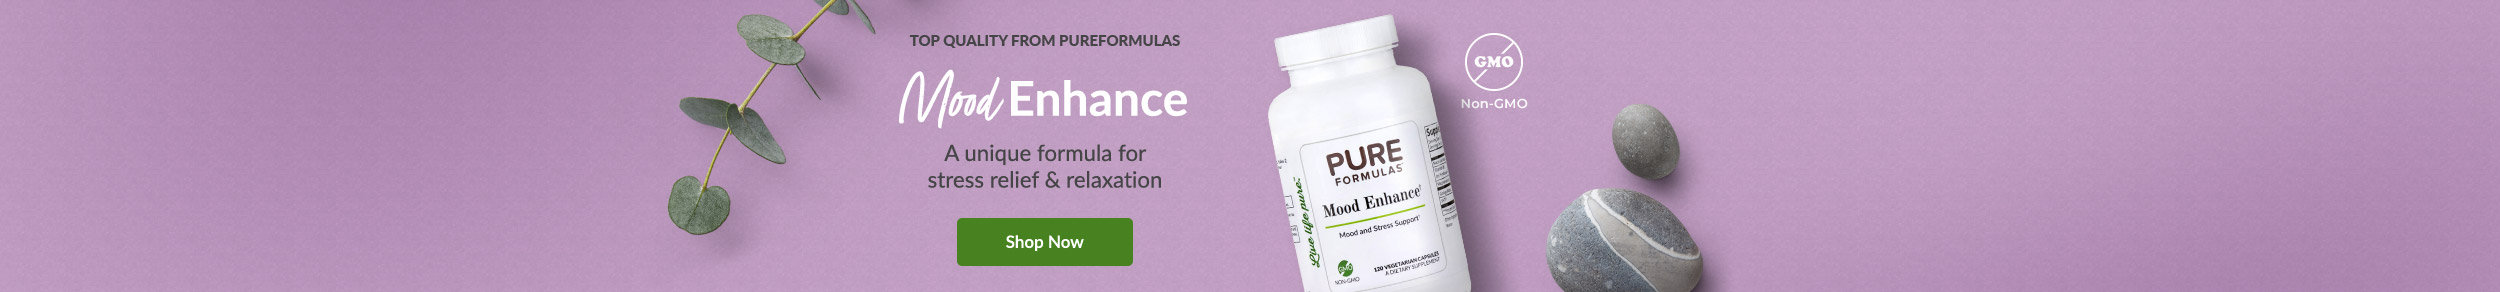 Top Quality from PureFormulas: Mood Enhance - Vitamin & mineral support blend for relaxation & stress relief